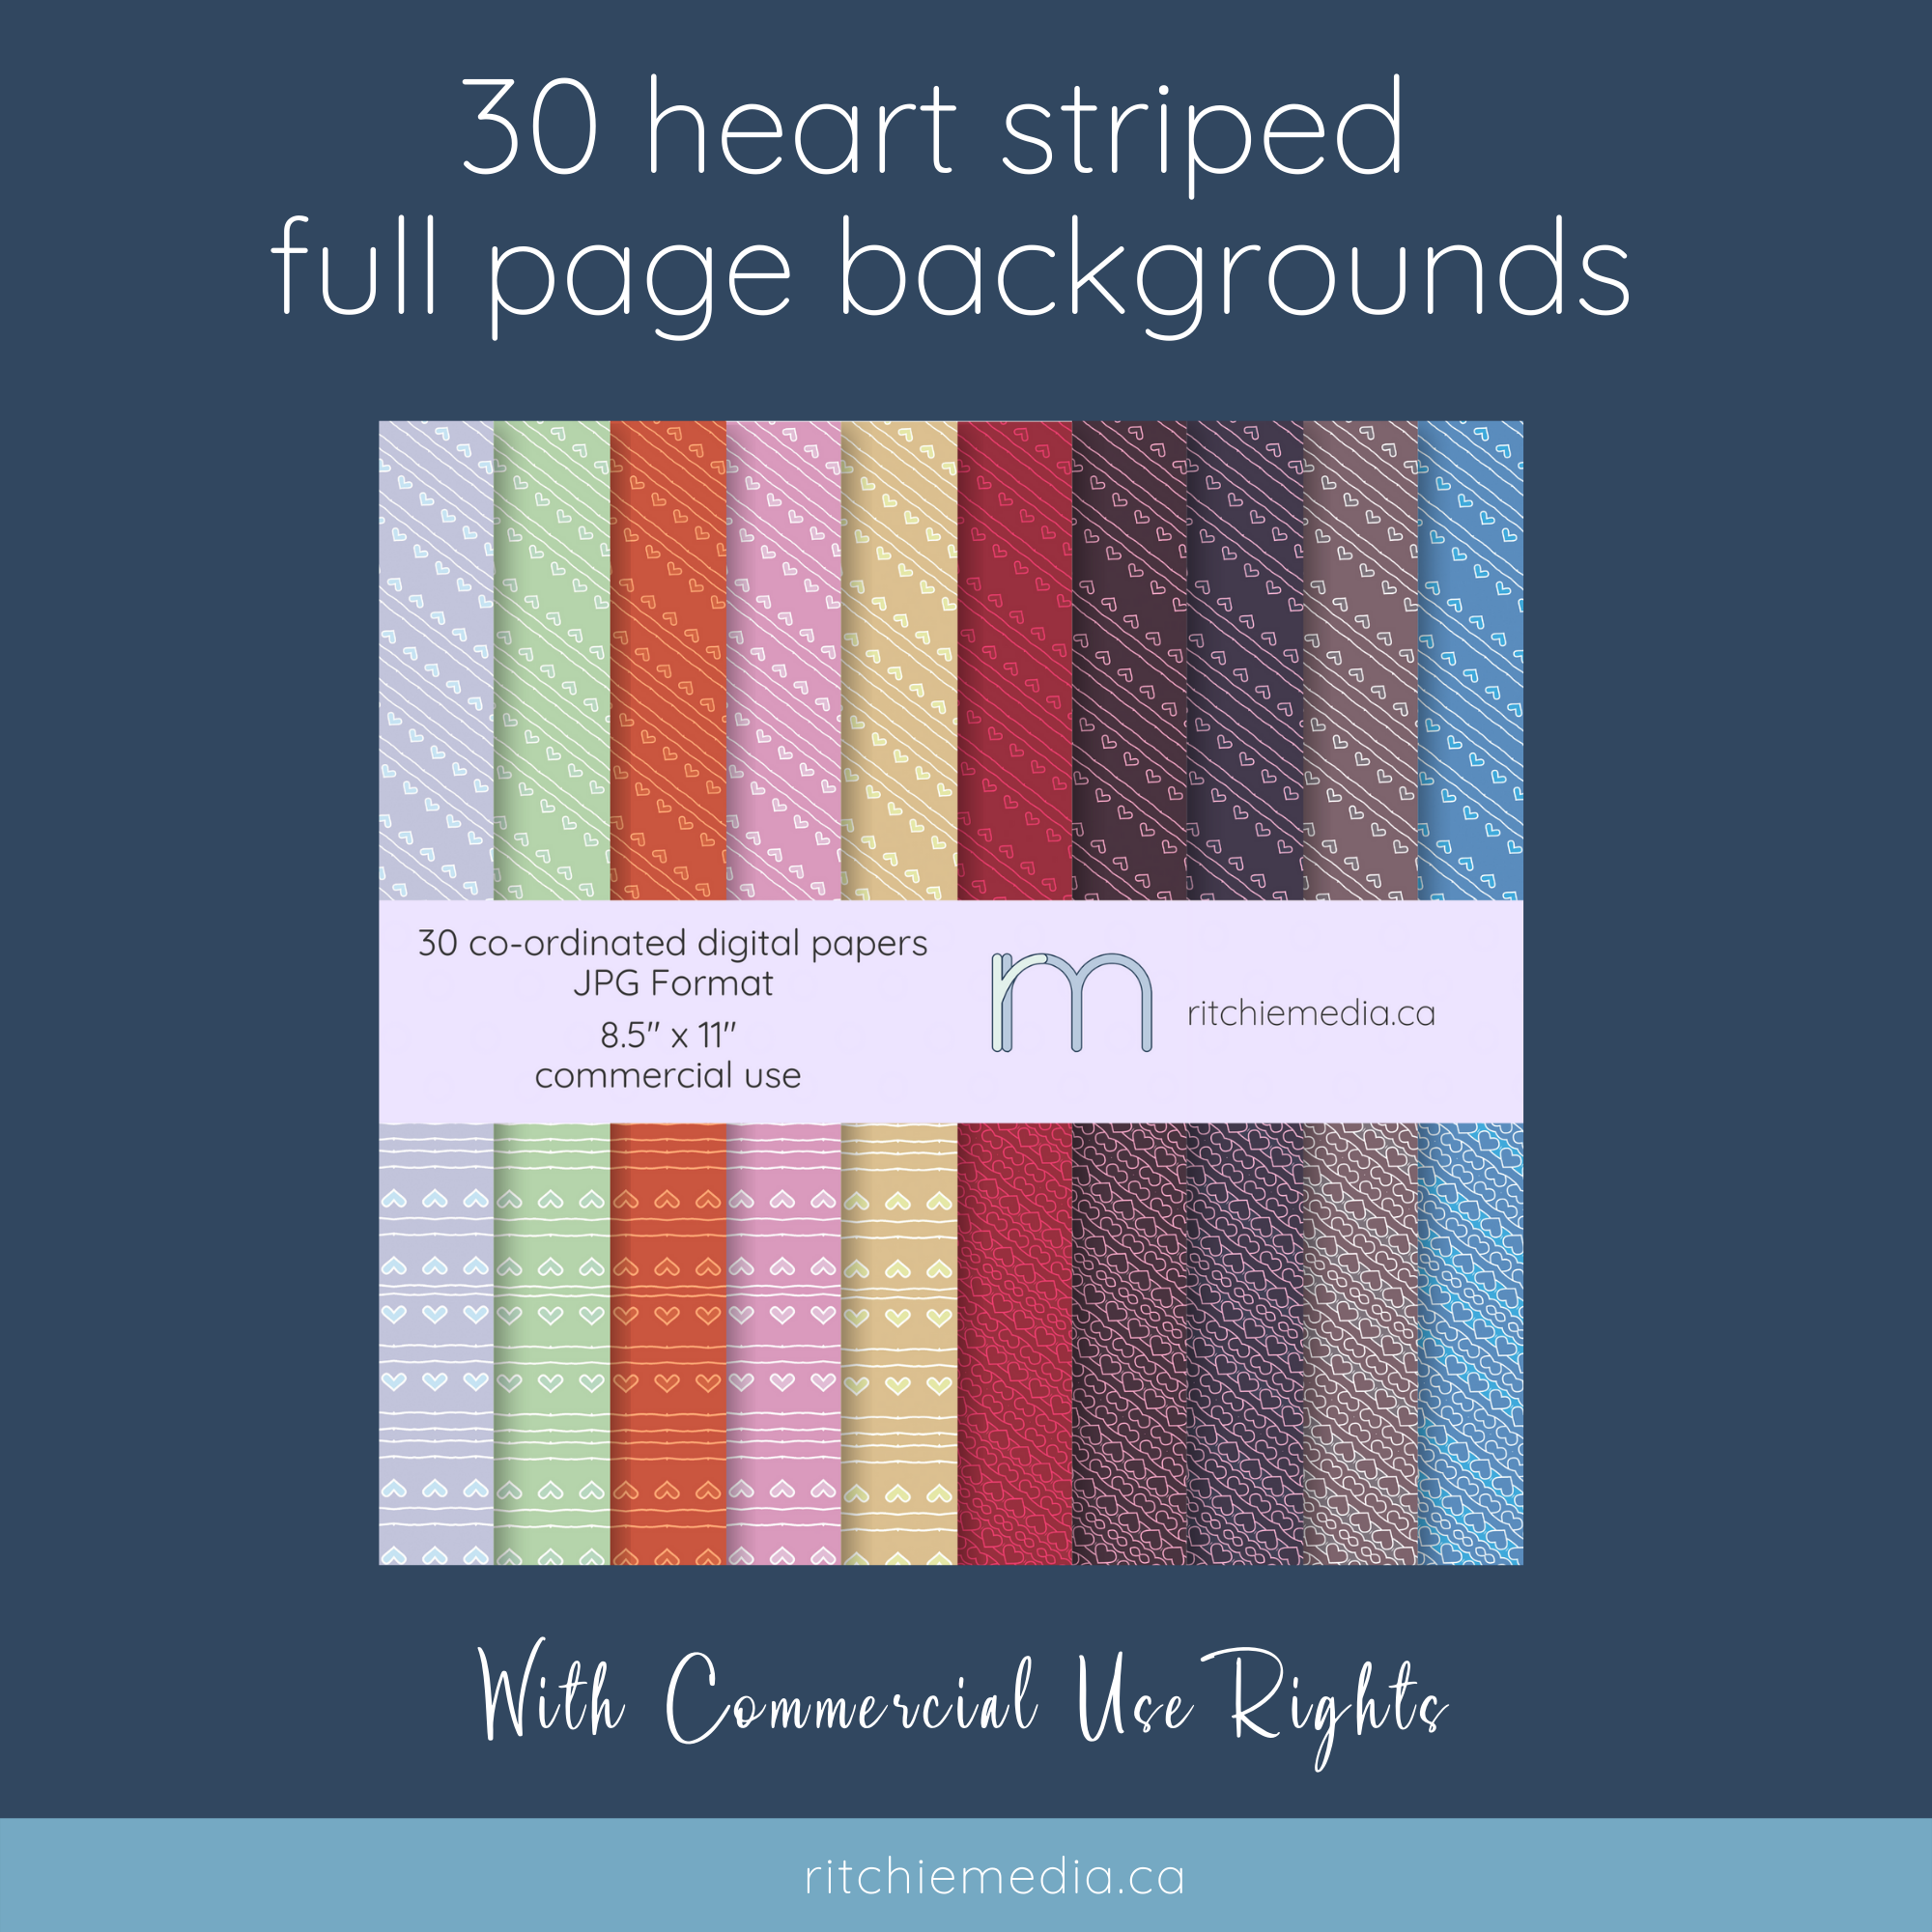 promo image for heart stripes backgrounds